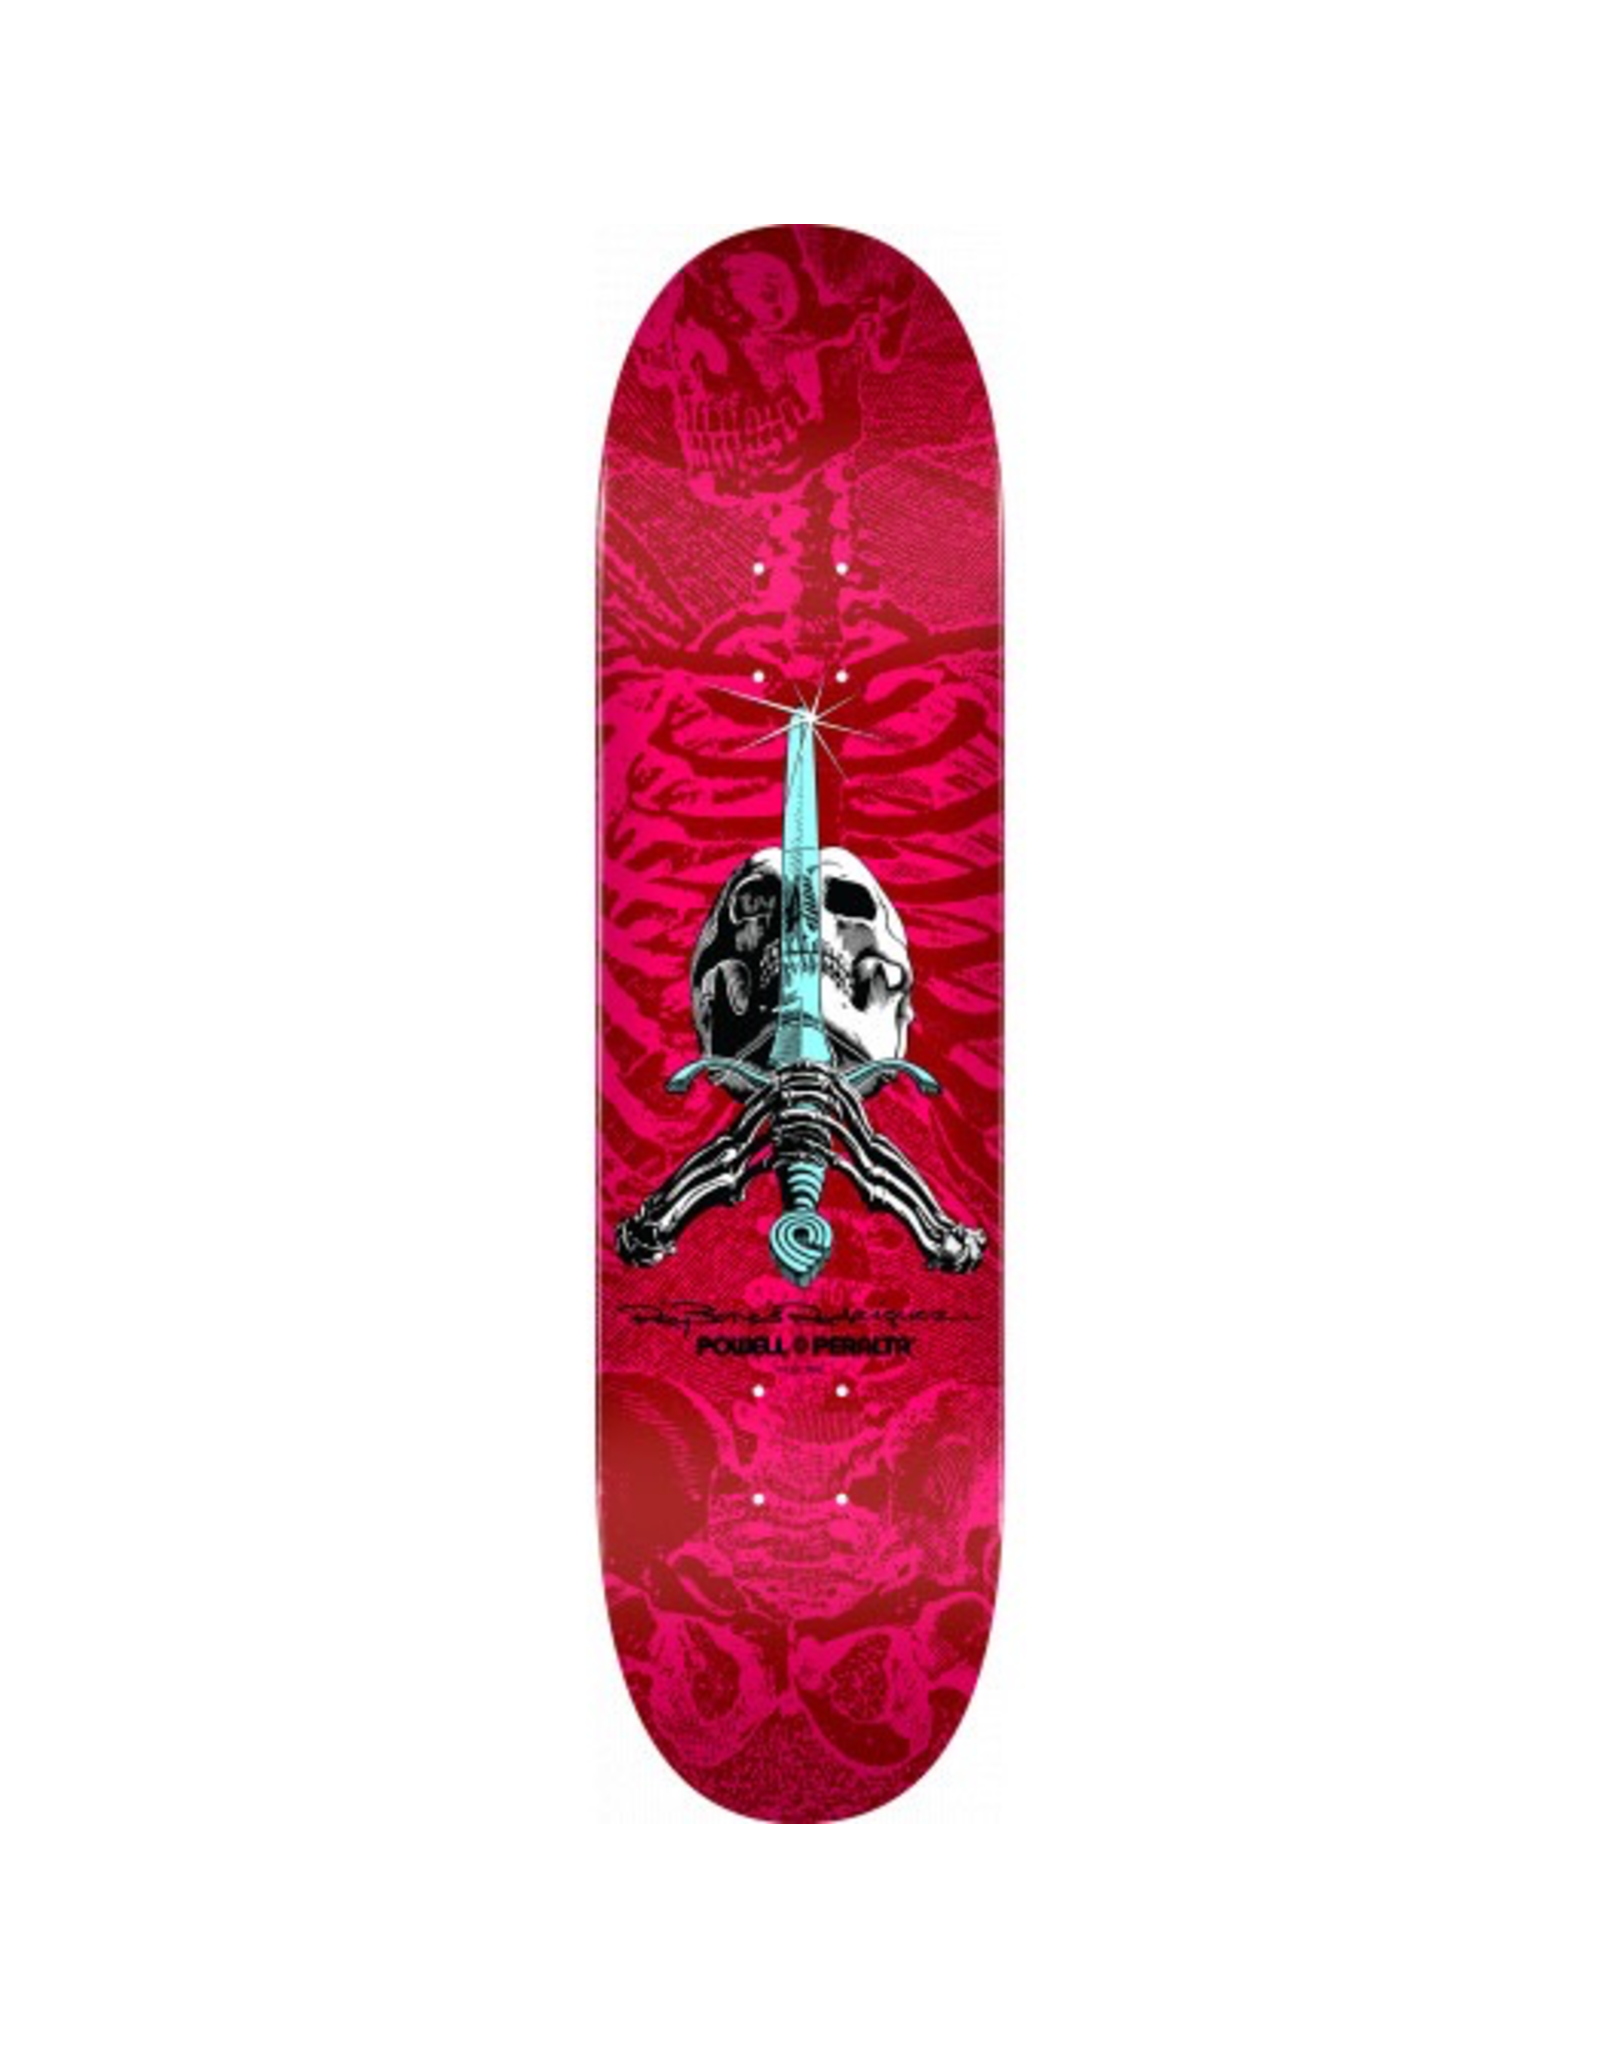 POWELL Powell Peralta Skull and Sword Skateboard Deck Red/Pink - Shape 249 - 8.5 x 32.08